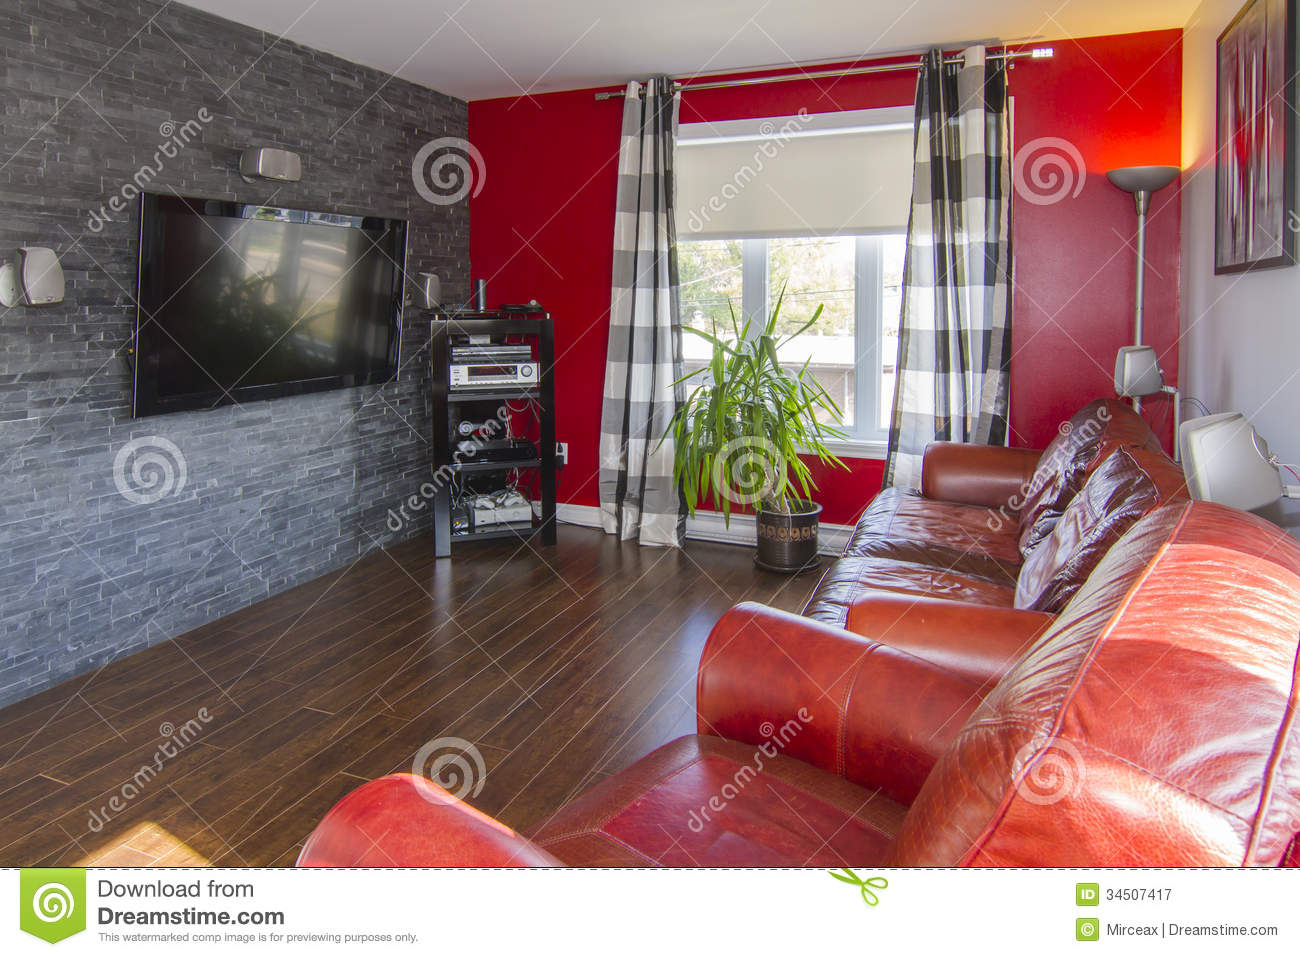 salon rouge et gris image stock image du tapis r el 34507417. Black Bedroom Furniture Sets. Home Design Ideas